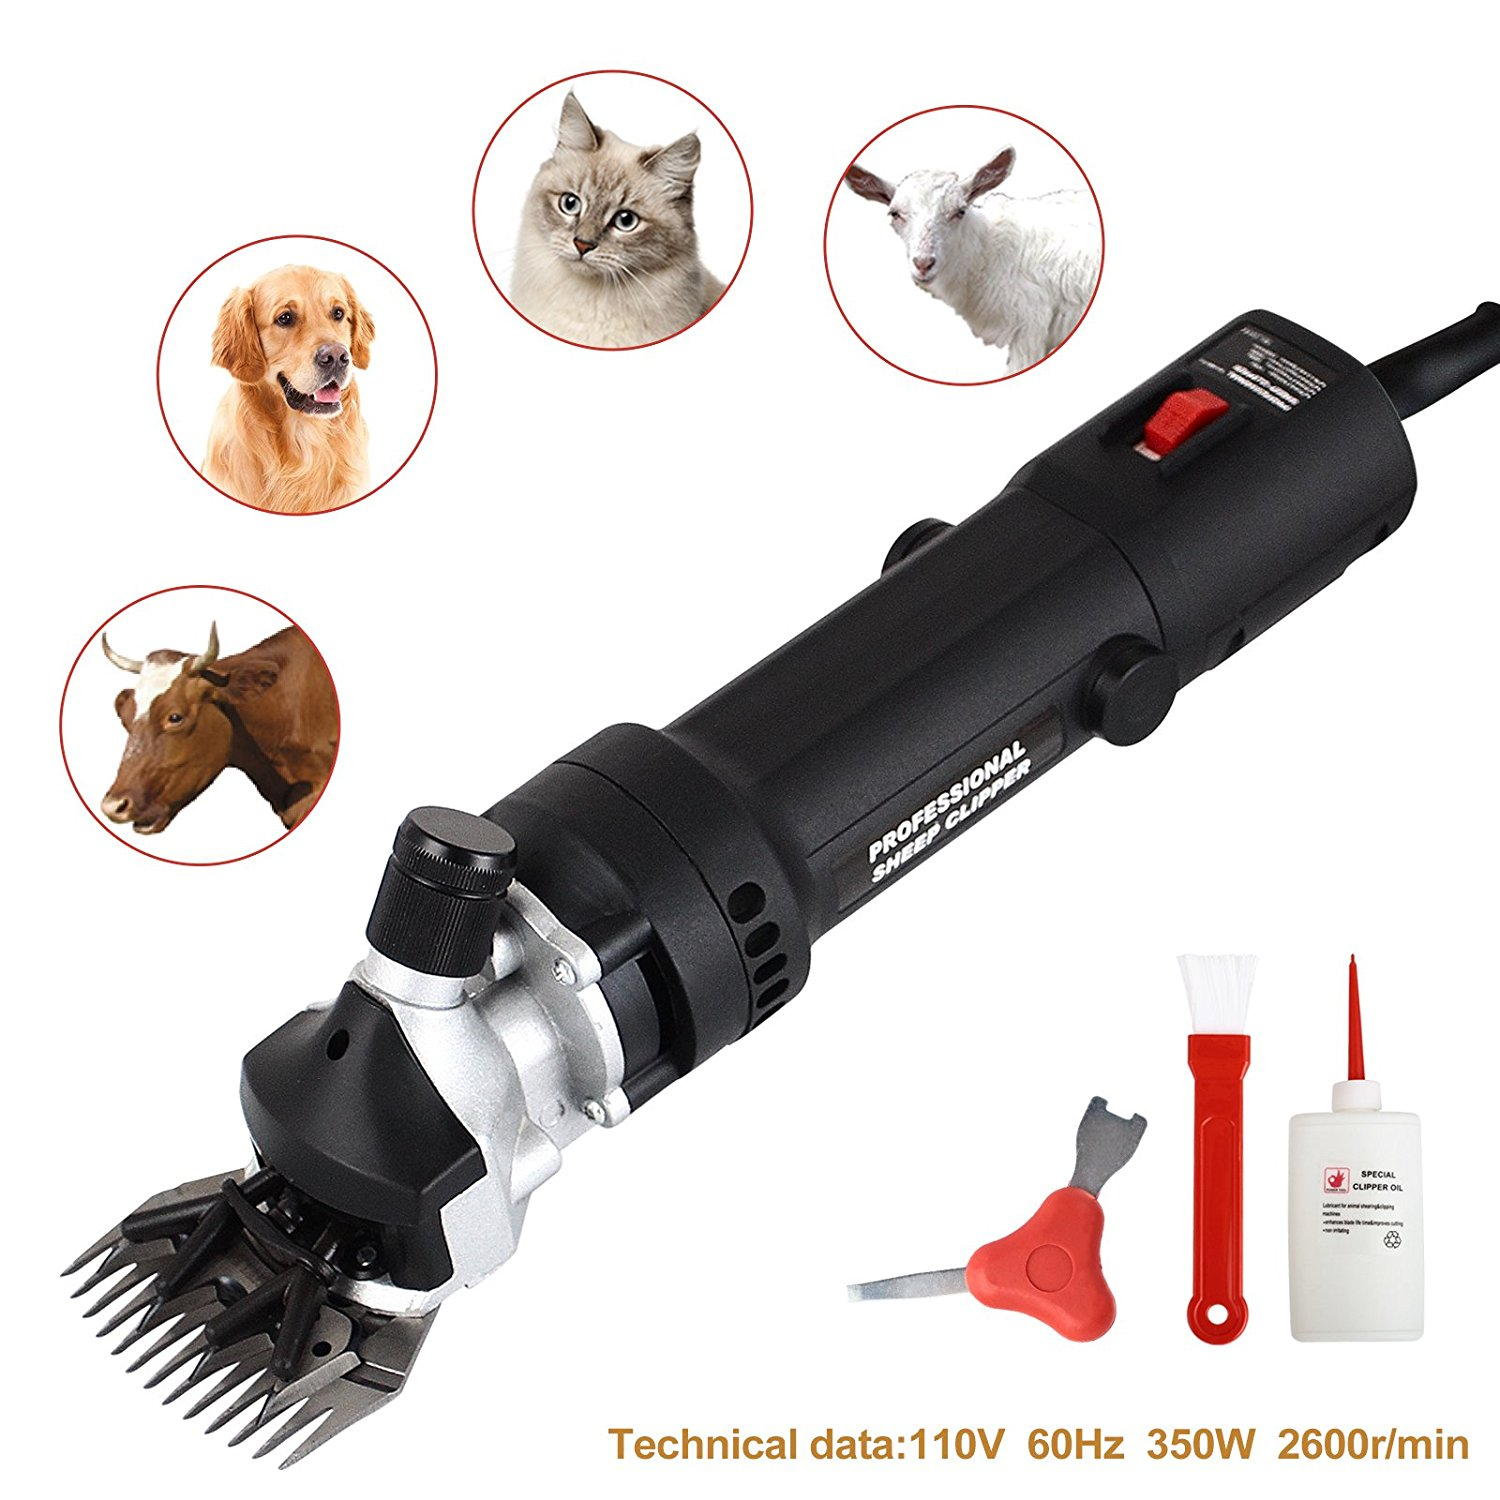 350W Electric Sheep Goat Shears Clippers Animal Shave Grooming Farm Livestock by Uenjoy